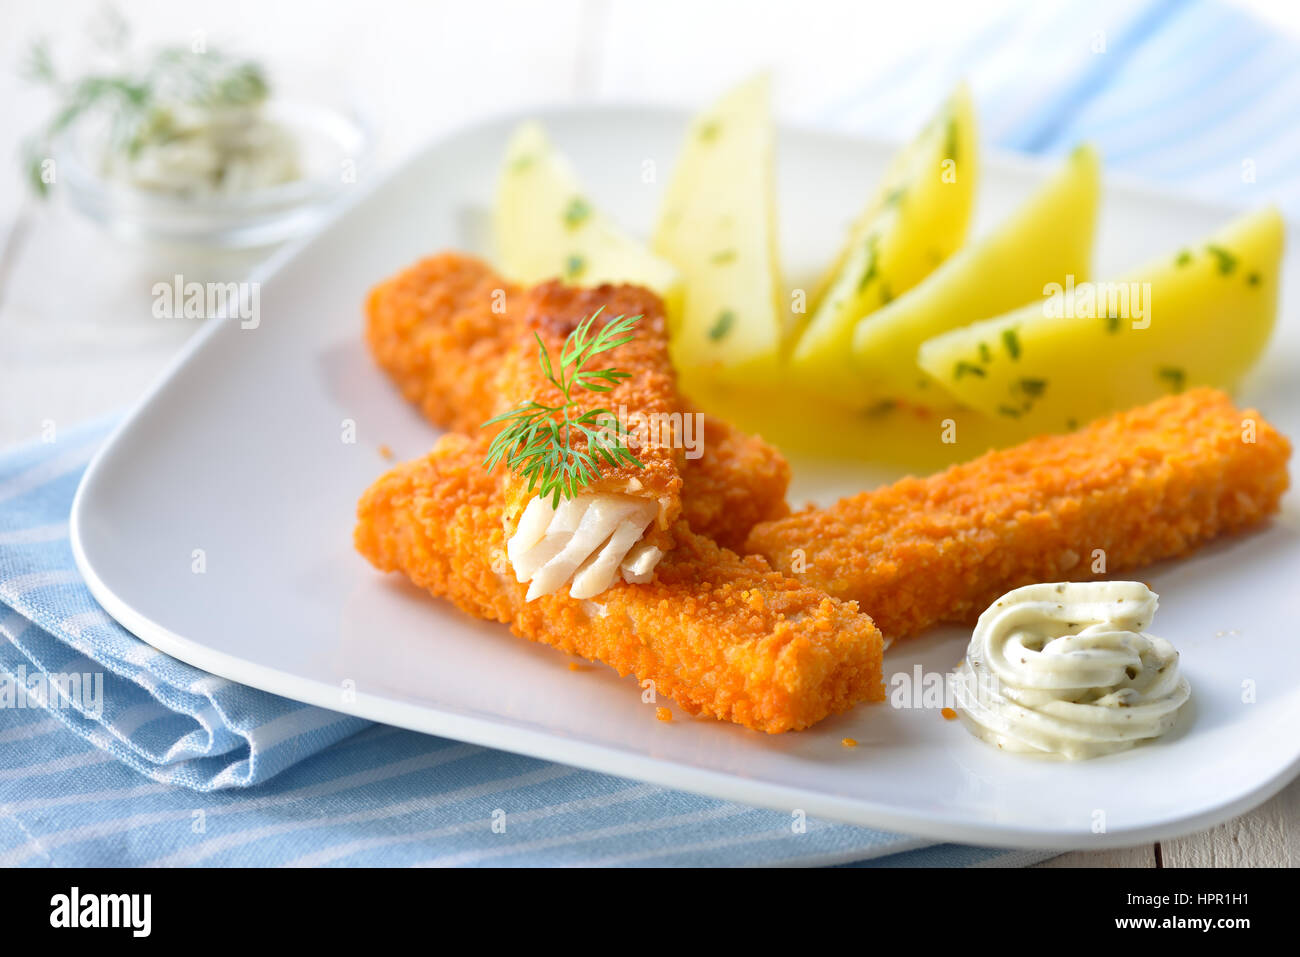 Crispy fish fingers of breaded pollack fillet served with parsley potatoes and remoulade sauce on a white plate - Stock Image